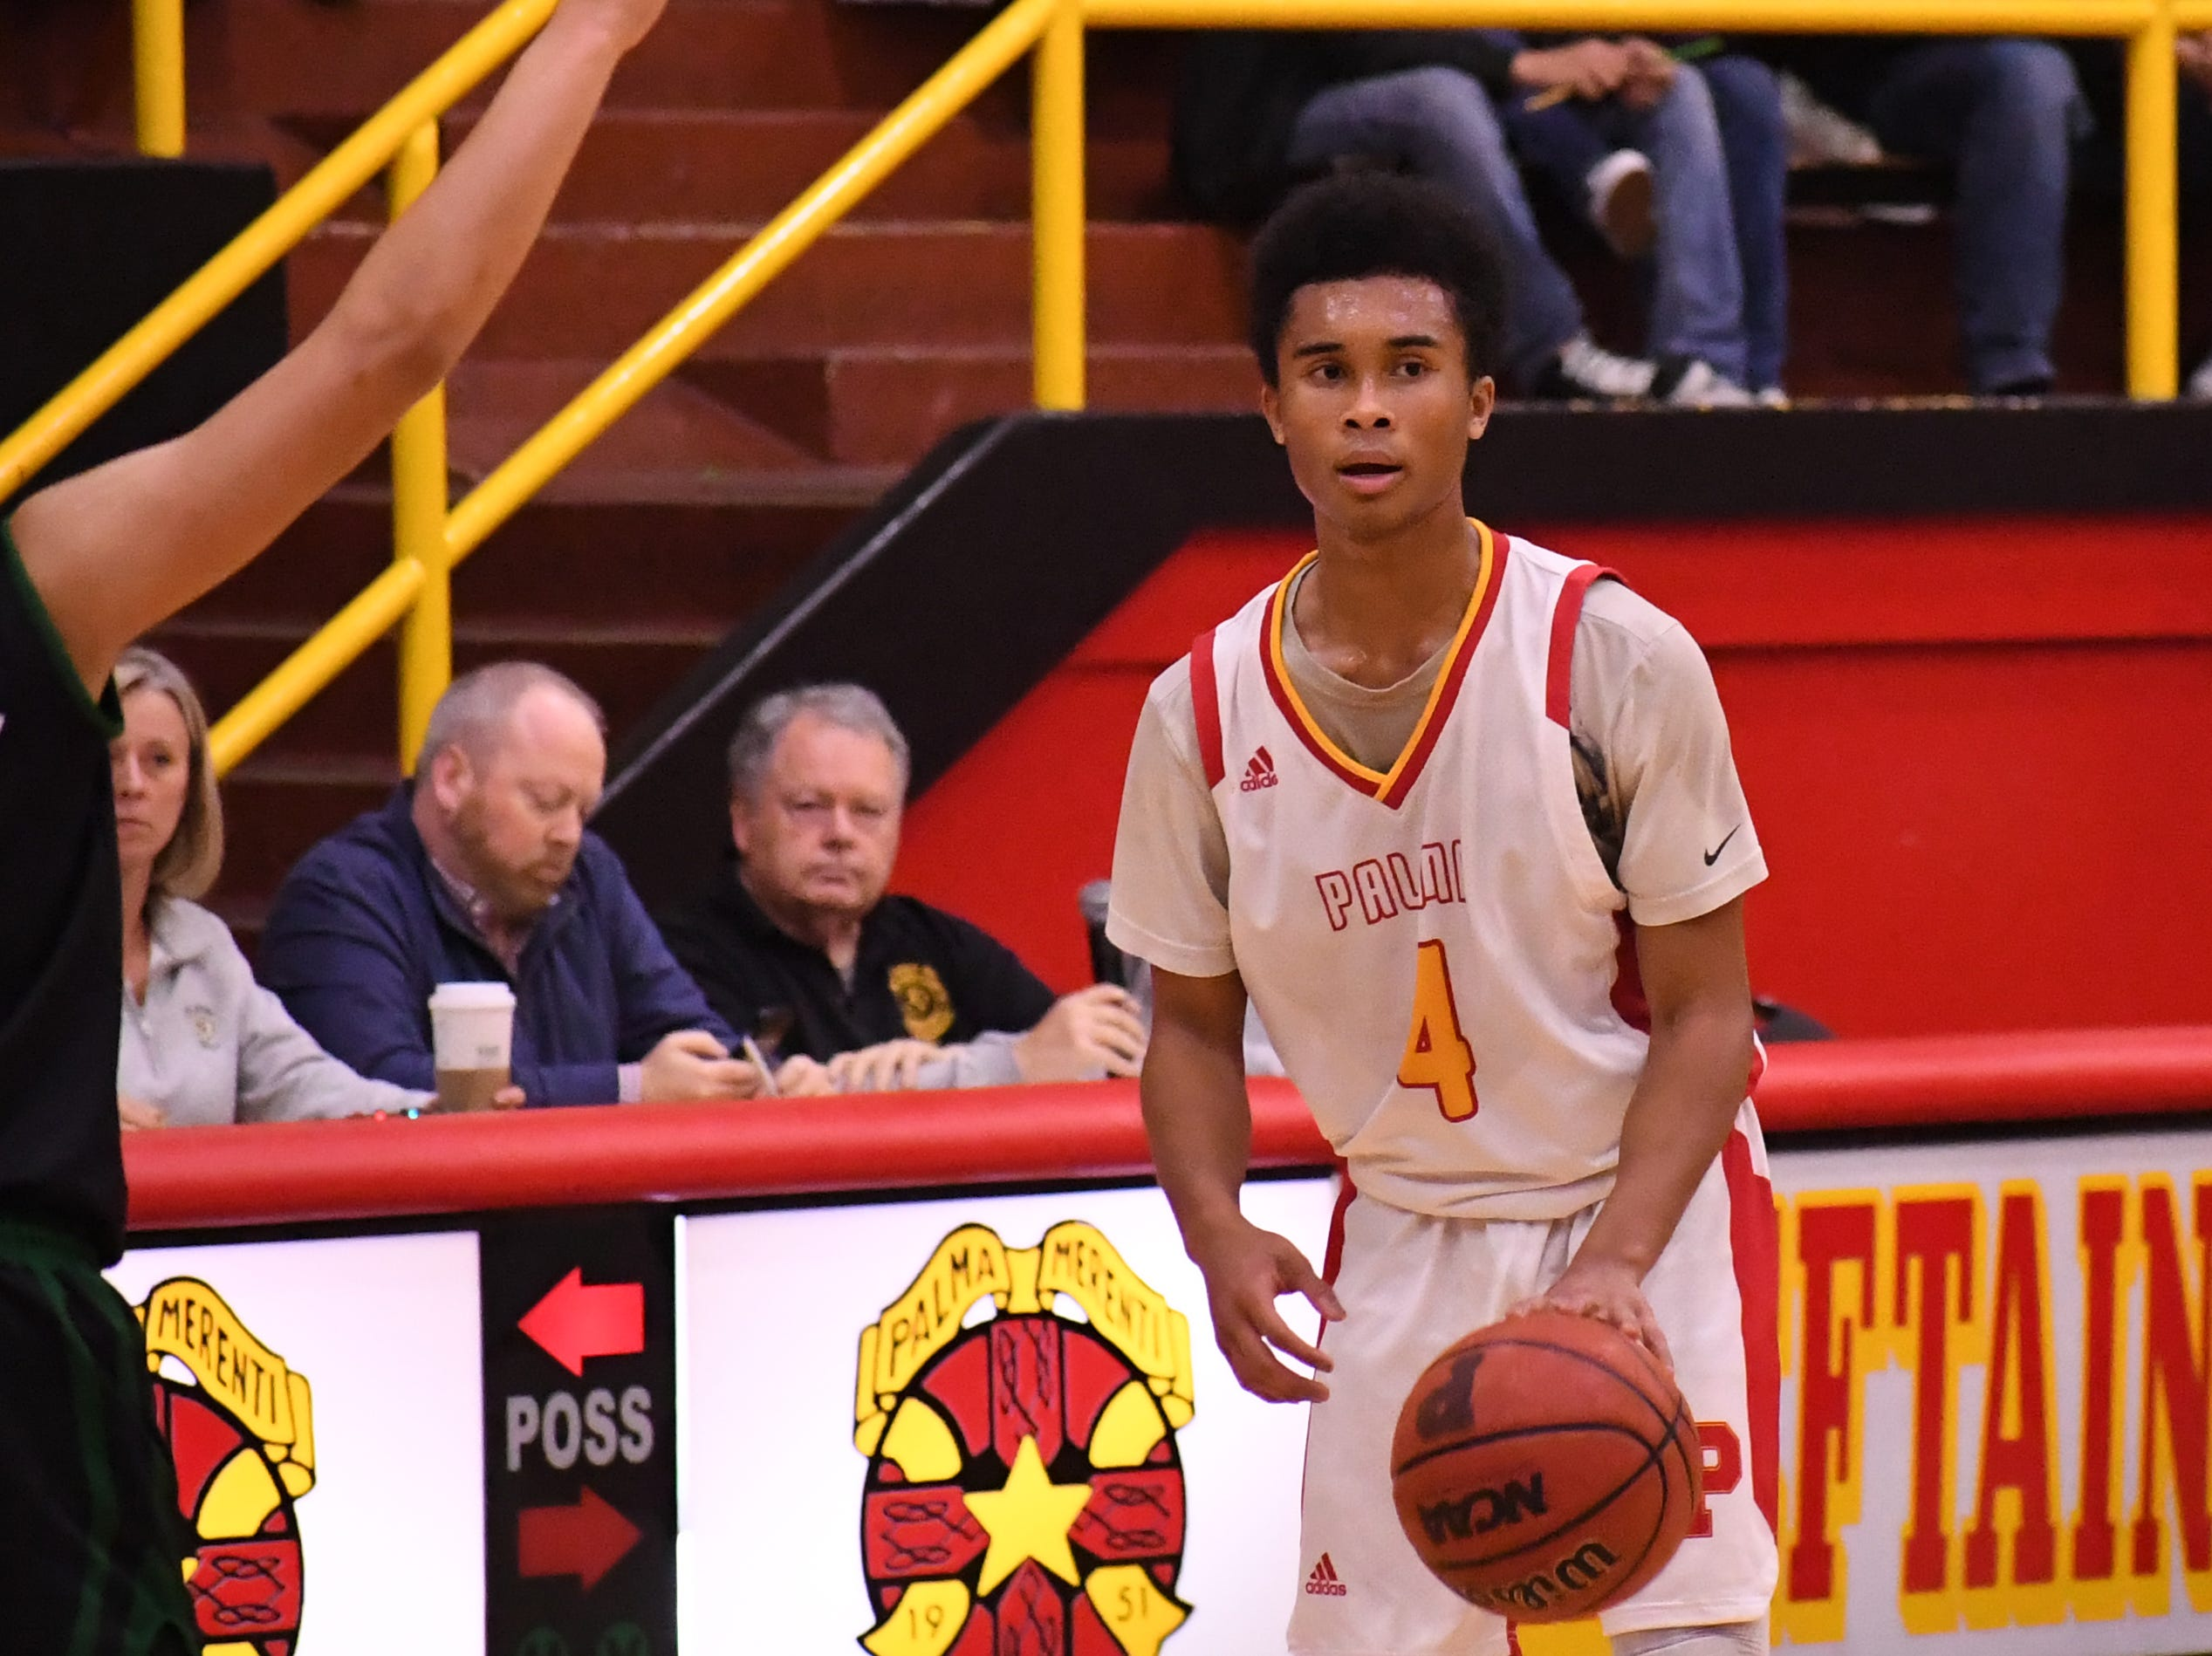 Palma guard Donte Jean Pierre (4) looks to pass on offense.